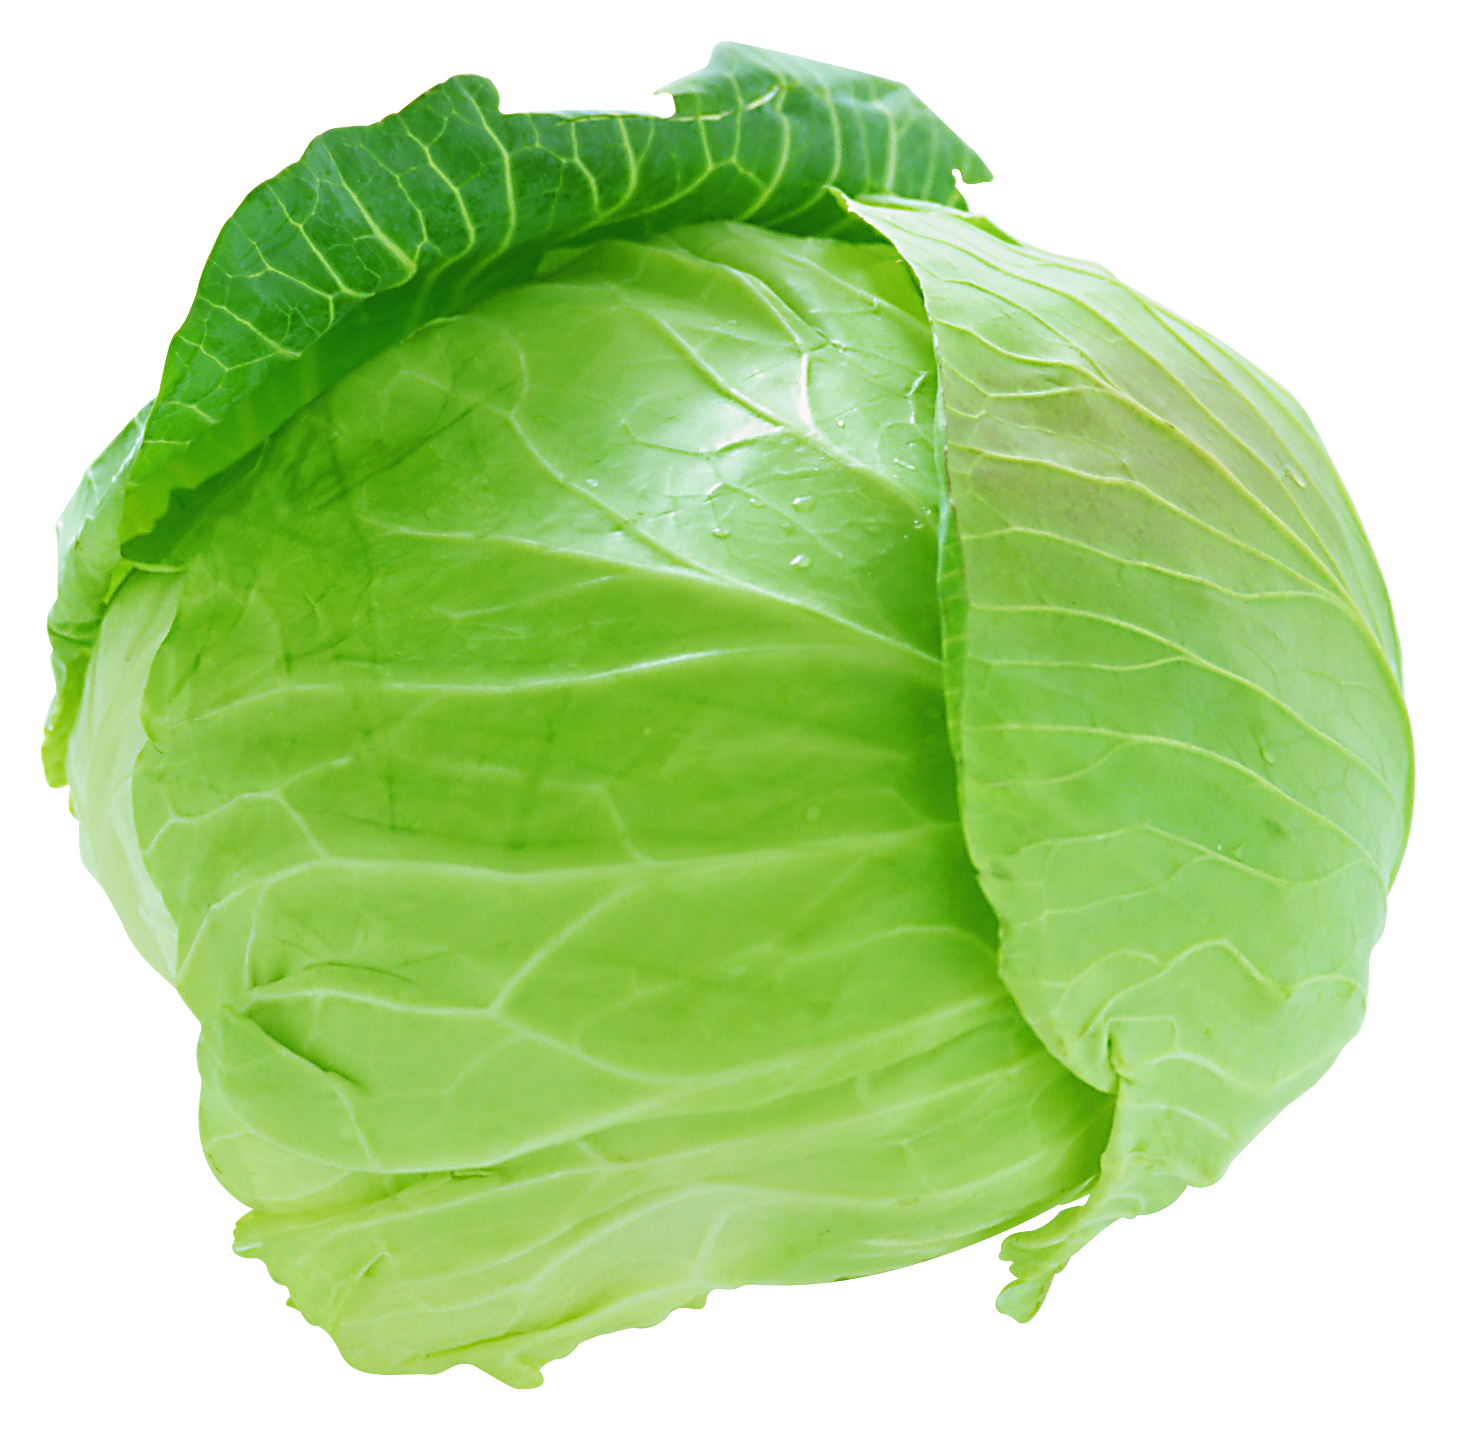 clipart Fresh png picture gallery. Cabbage clipart iceberg lettuce.